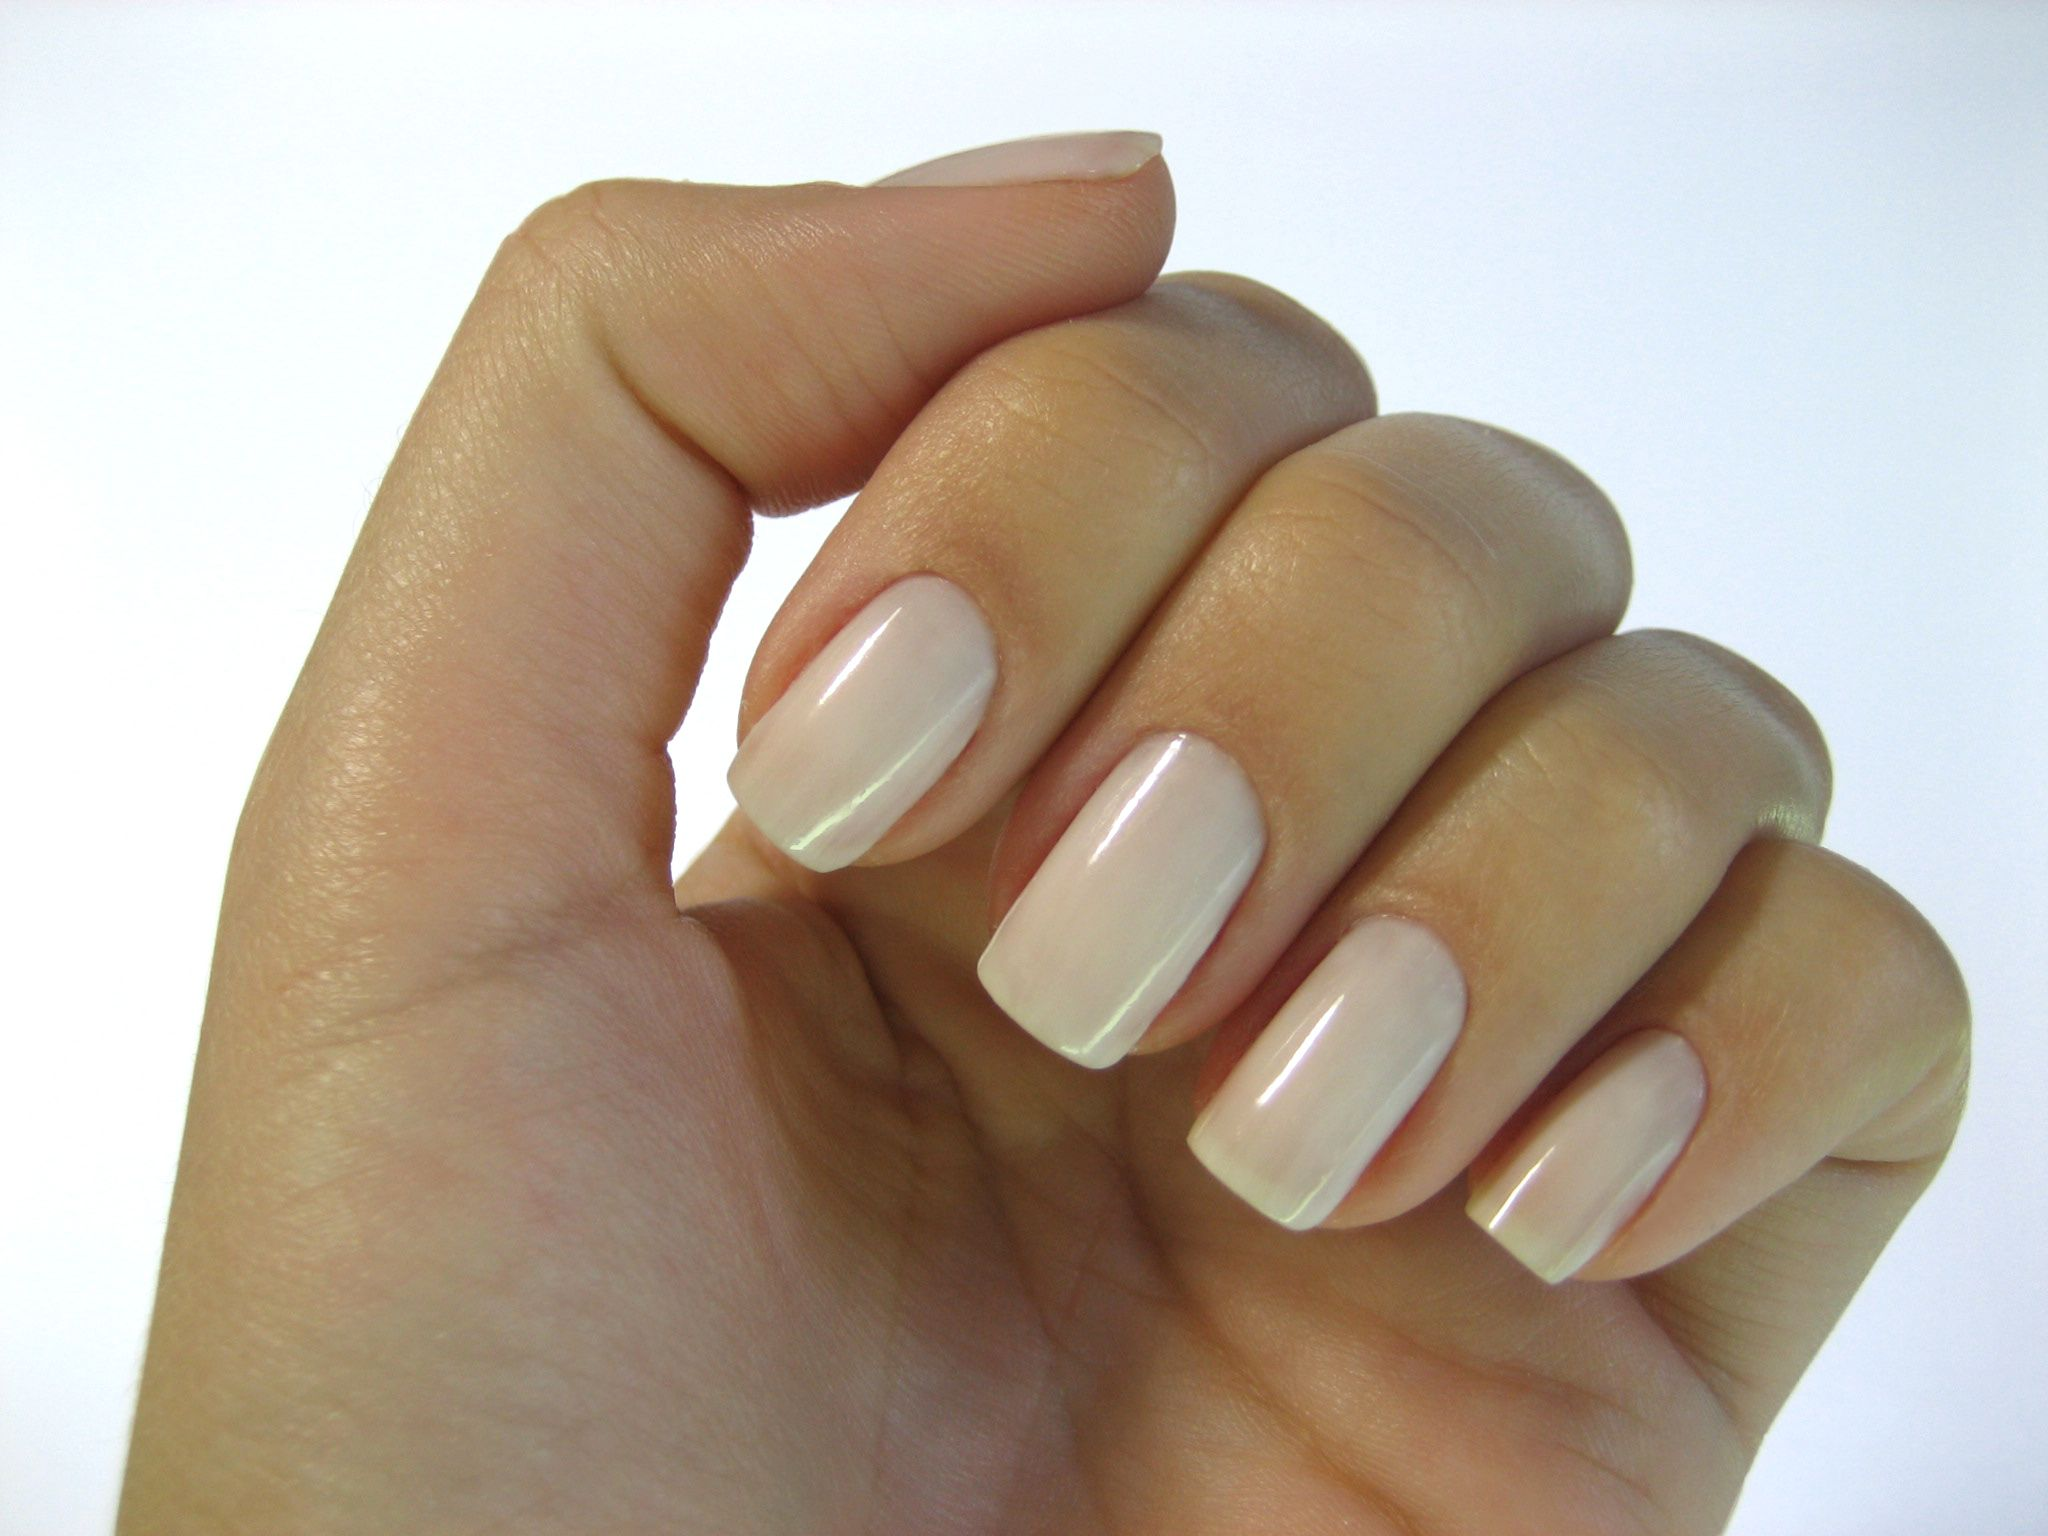 Nail color trends for fall 2013 | Brittle nails, Nail polish colors ...